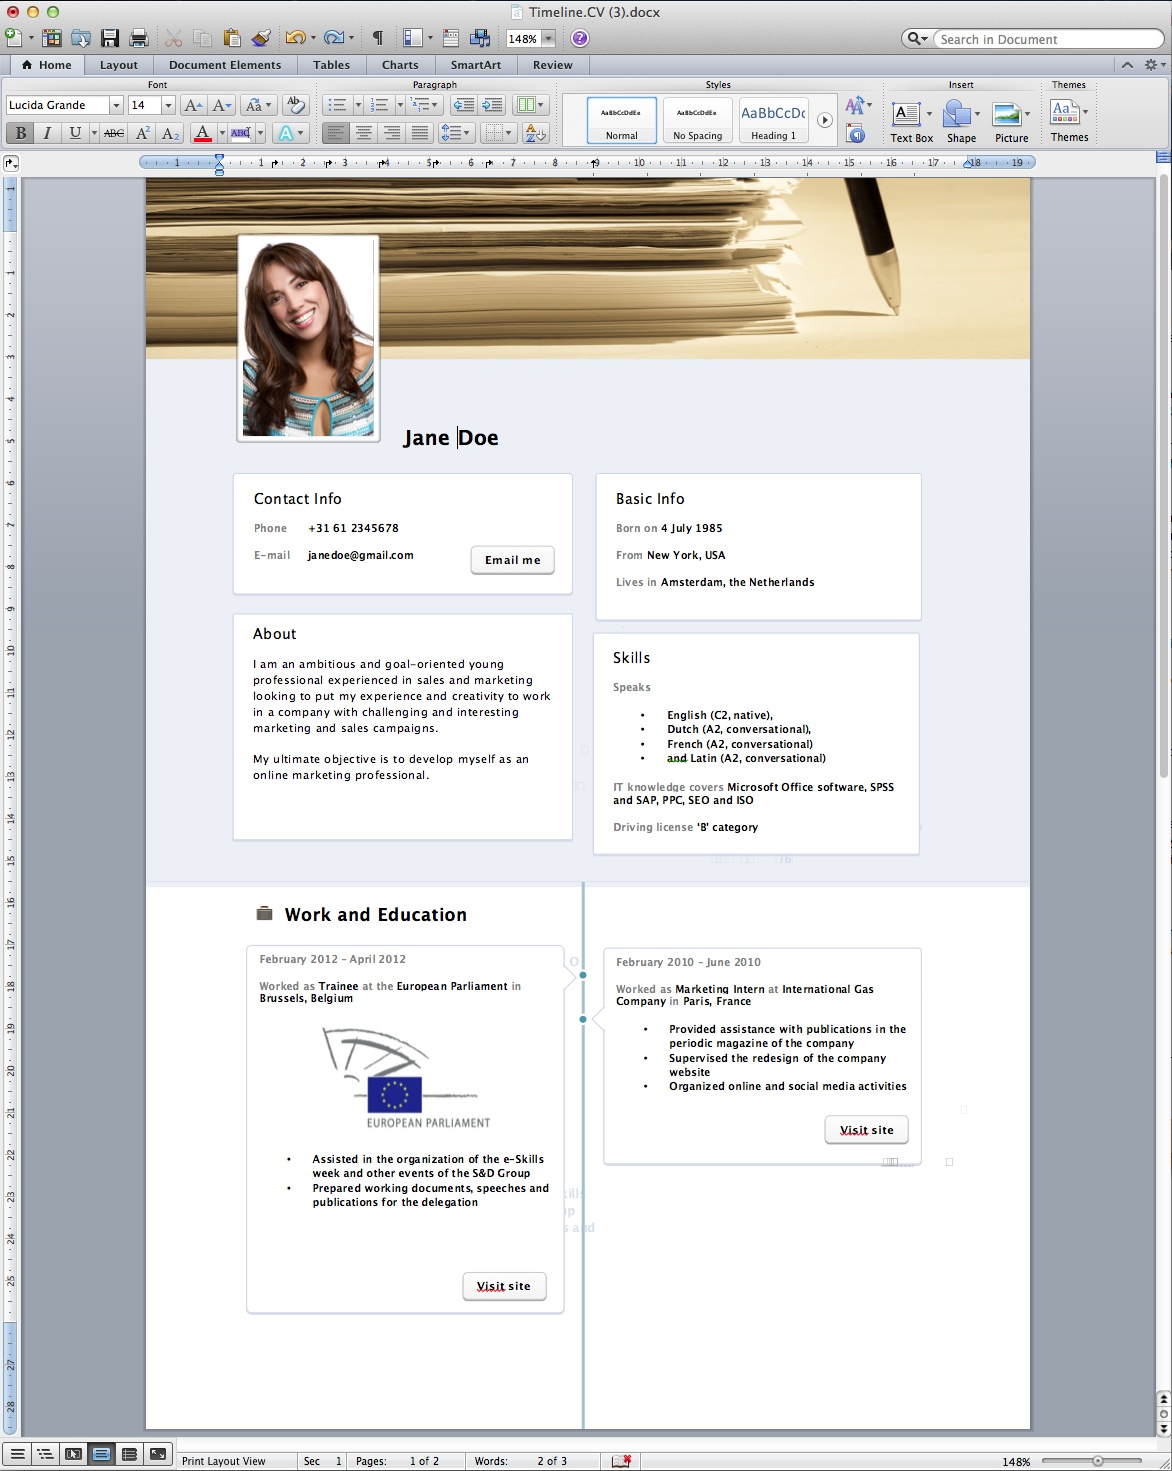 cv layout tk cv layout 24 04 2017 - Best Template For Resume